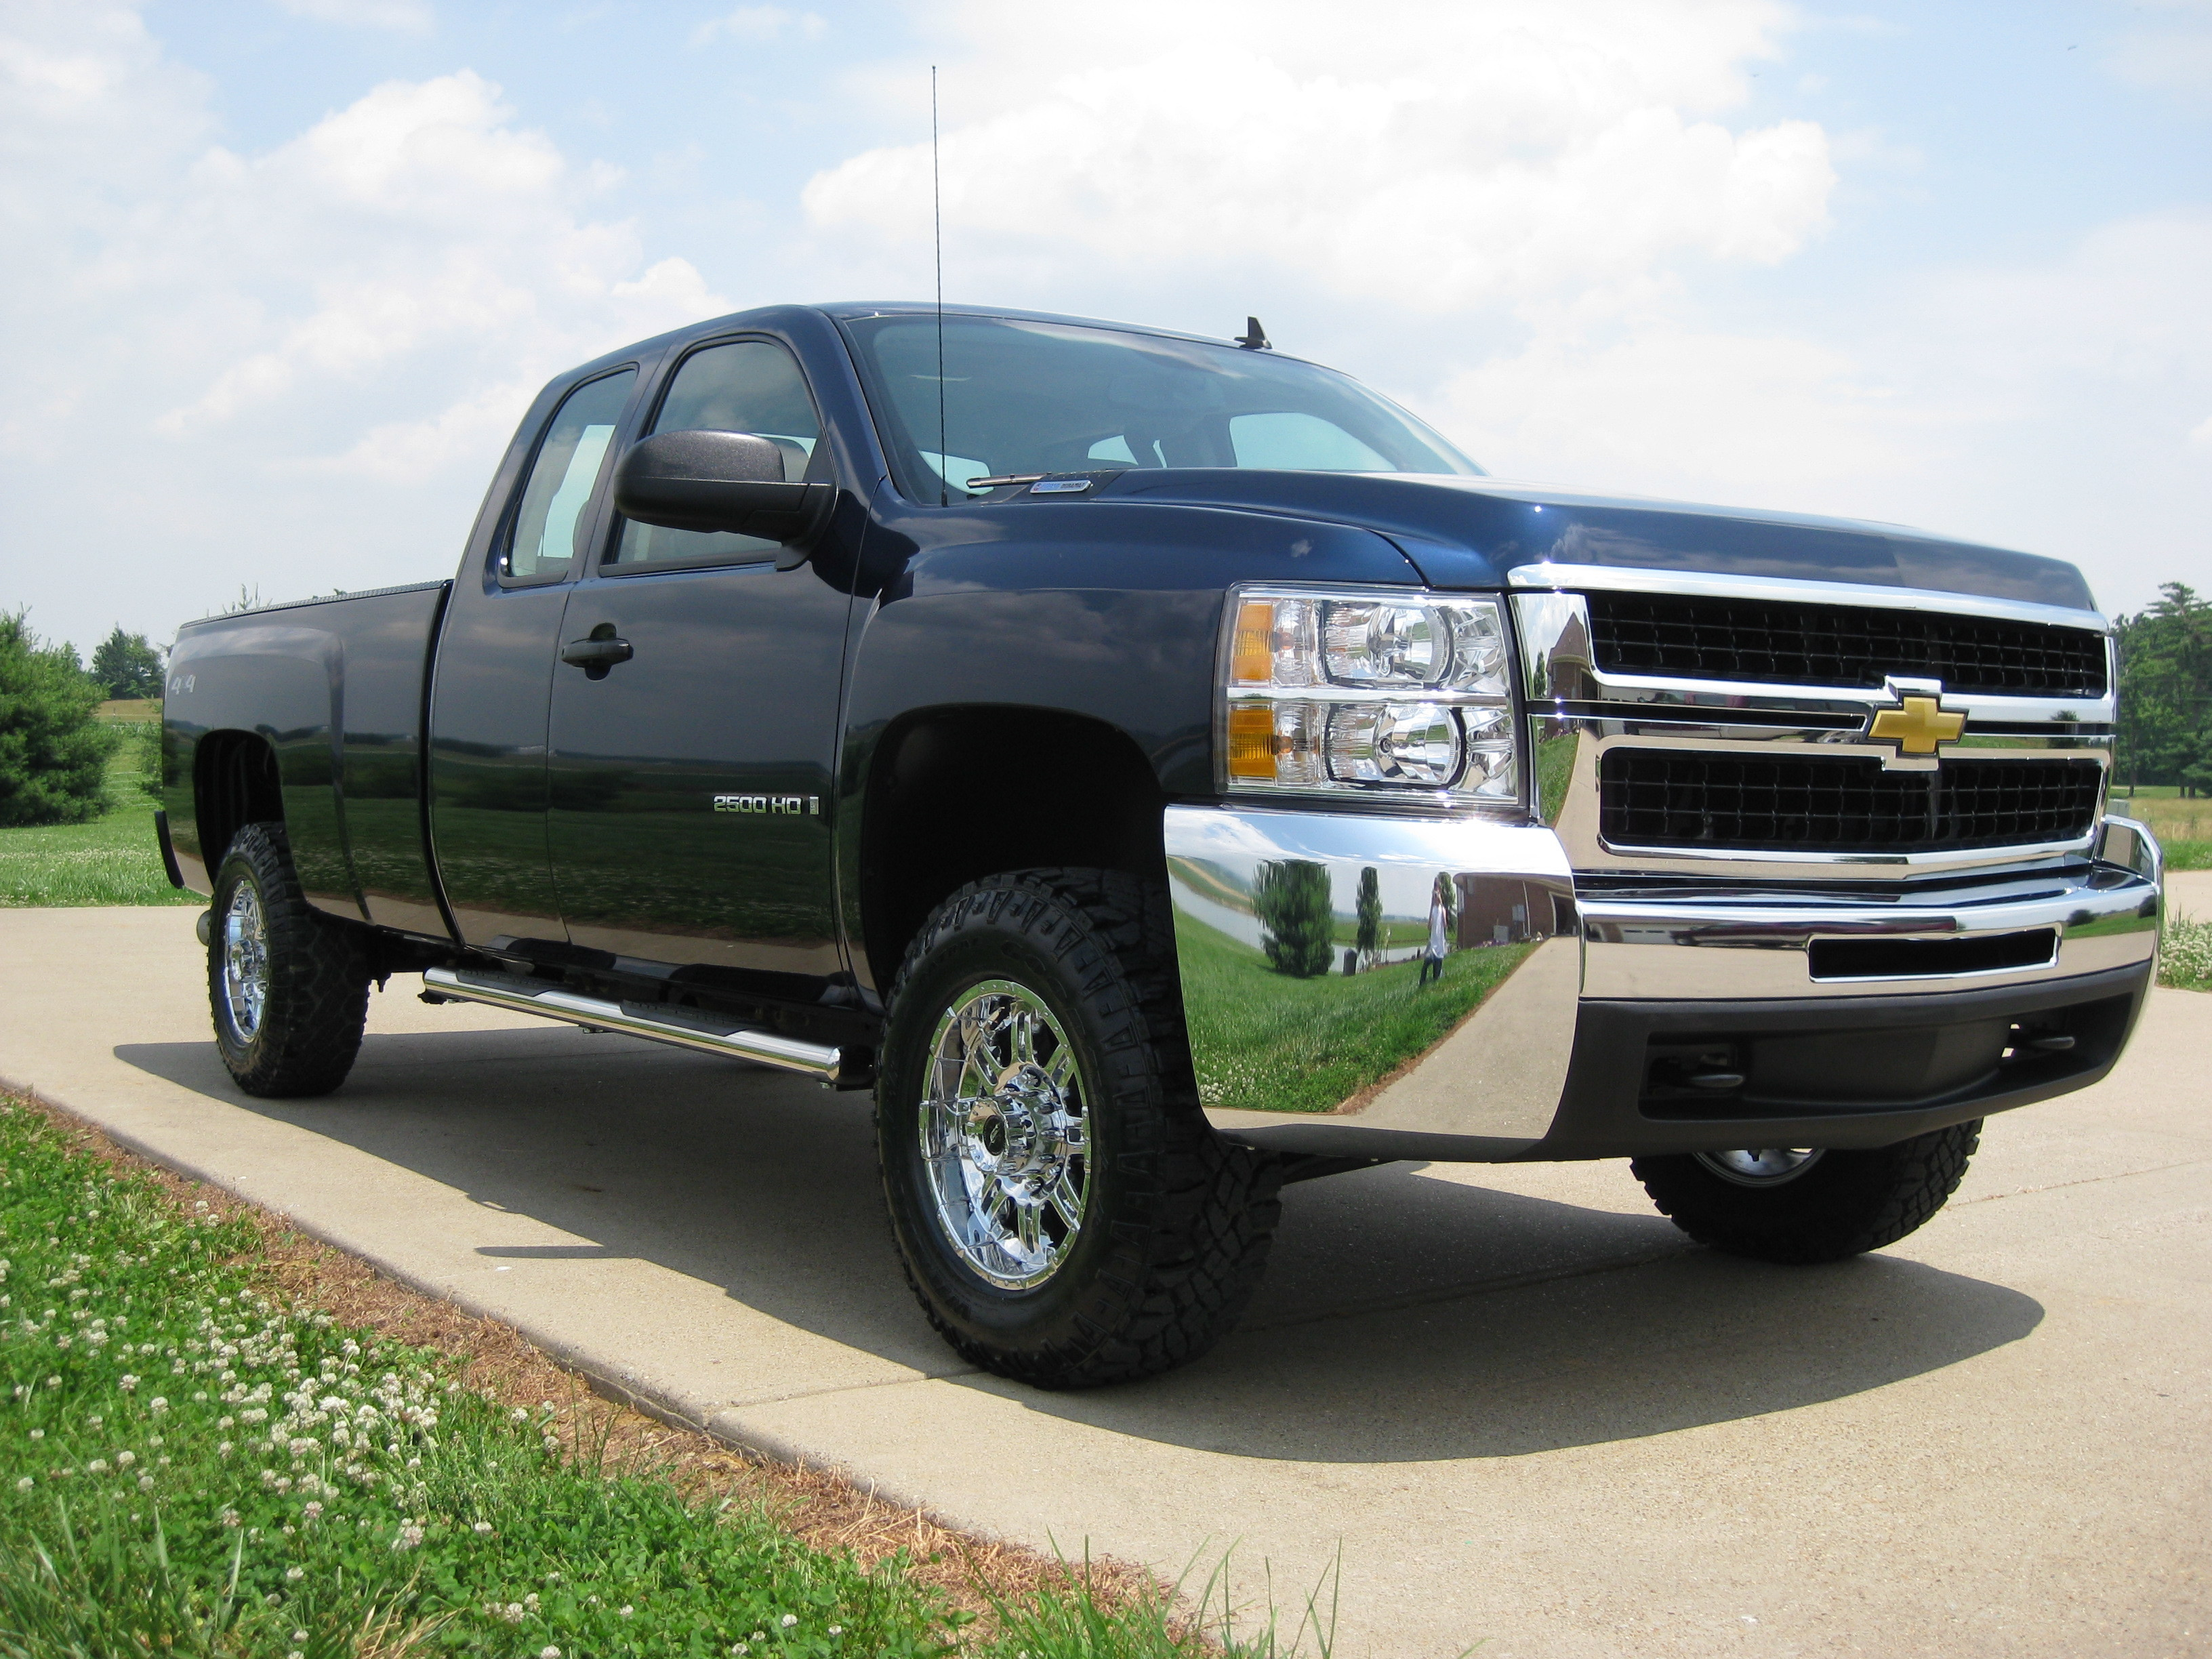 tg textured guard hd chevrolet product tough a silverado